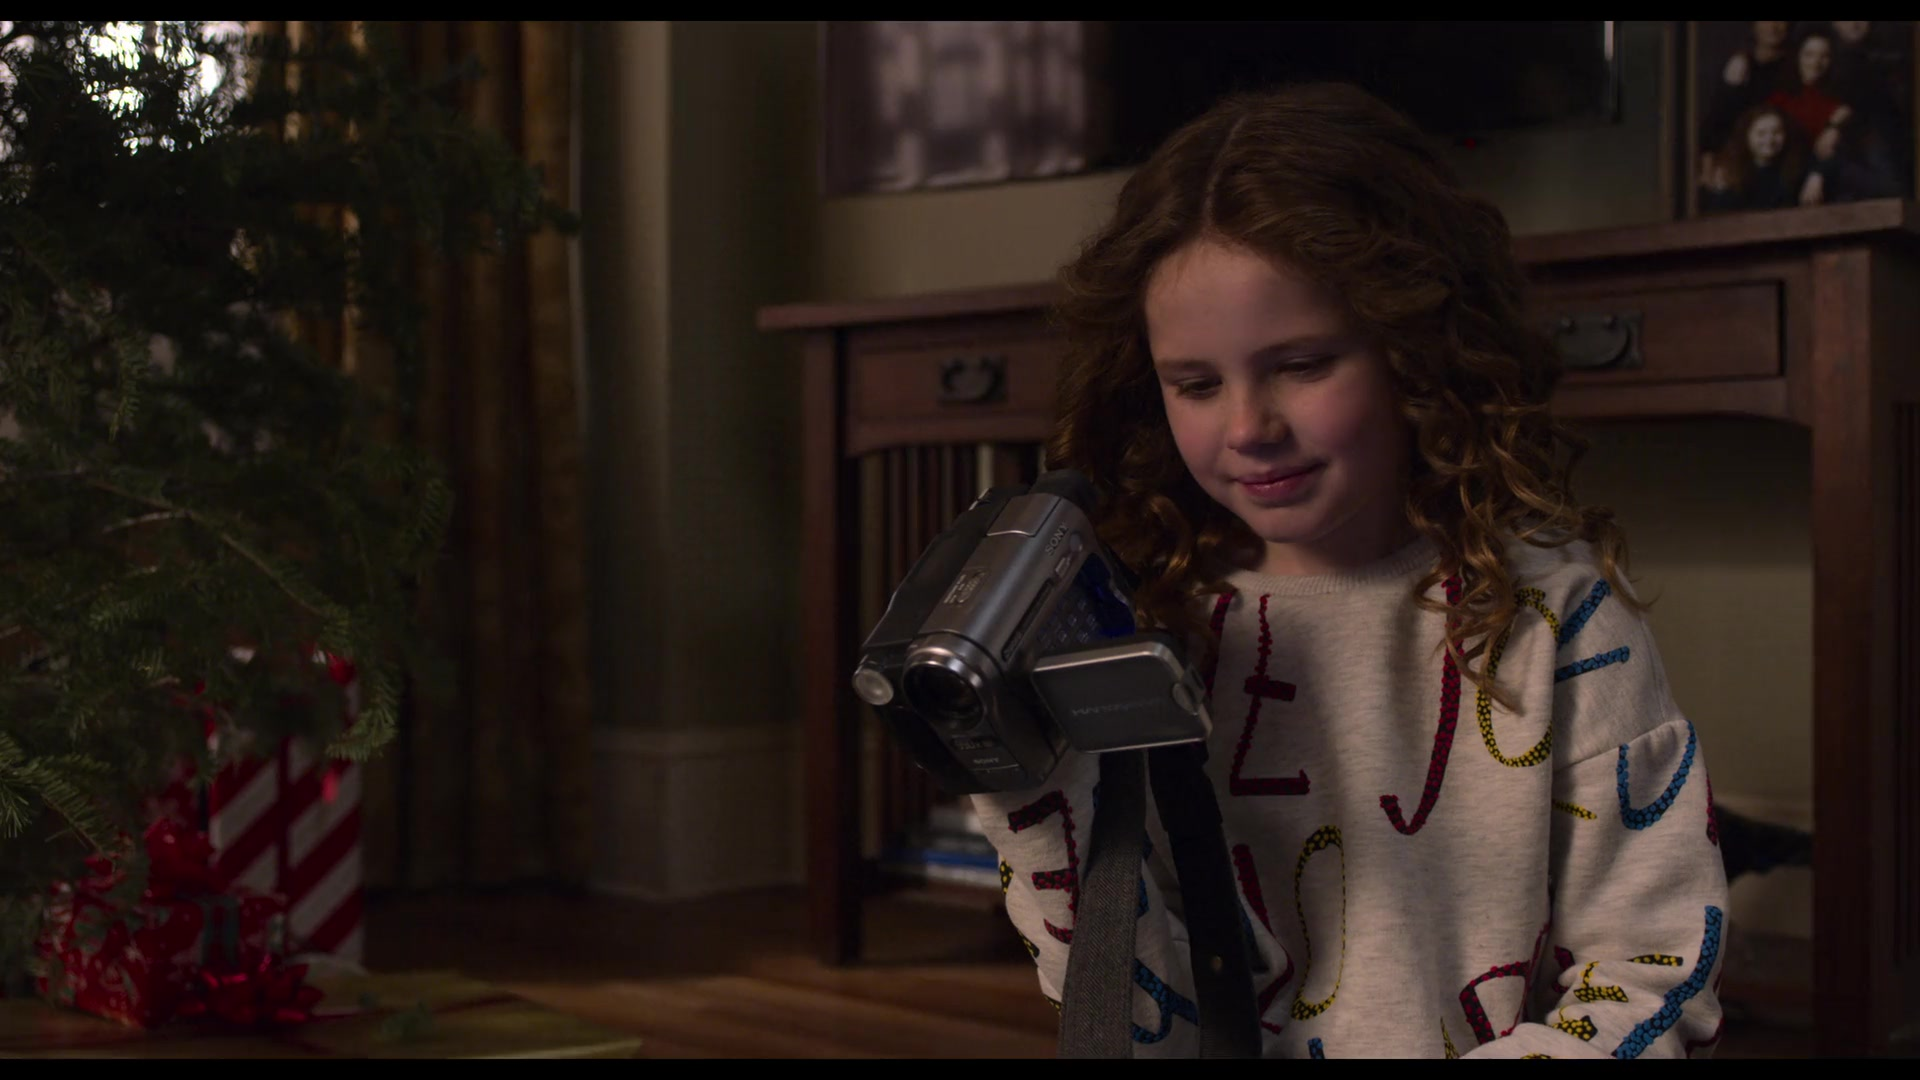 The Christmas Chronicles 2.Sony Handycam Camcorder Used By Darby Camp In The Christmas